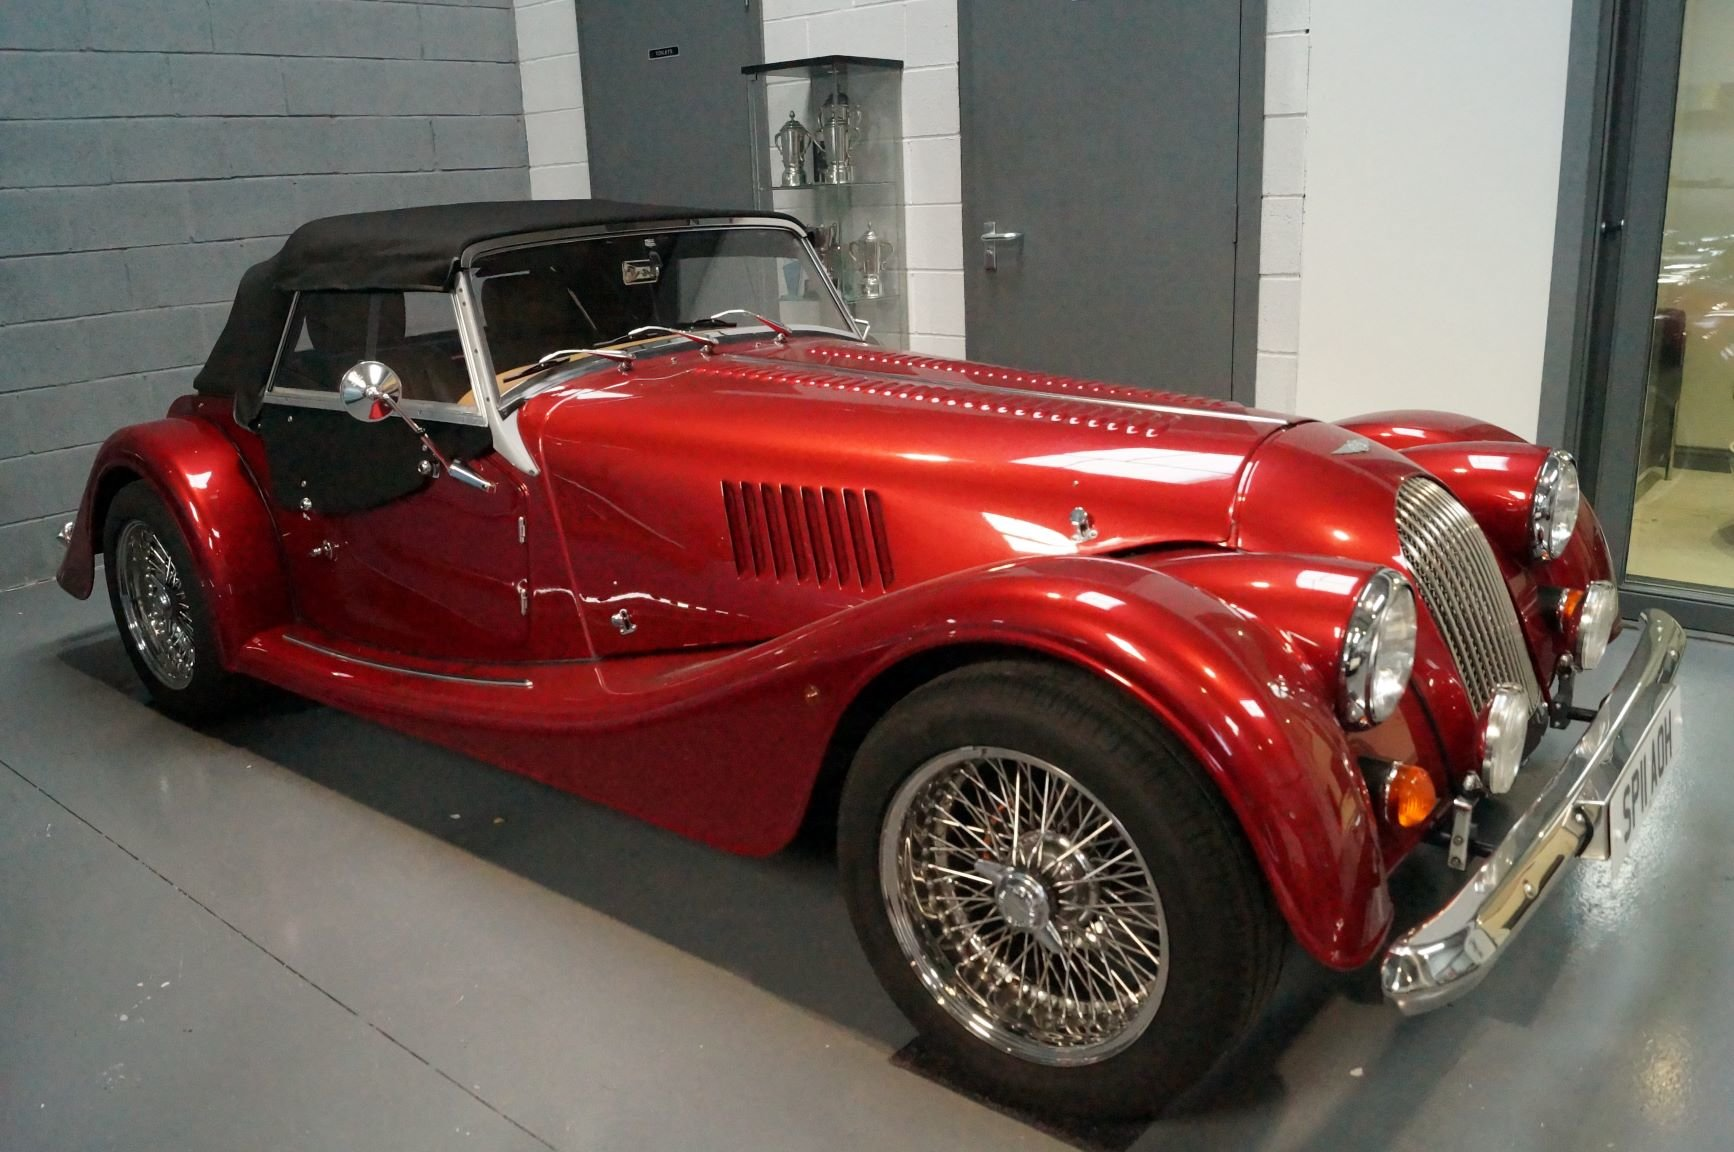 2011 Morgan Roadster 3.0 For Sale (picture 1 of 6)